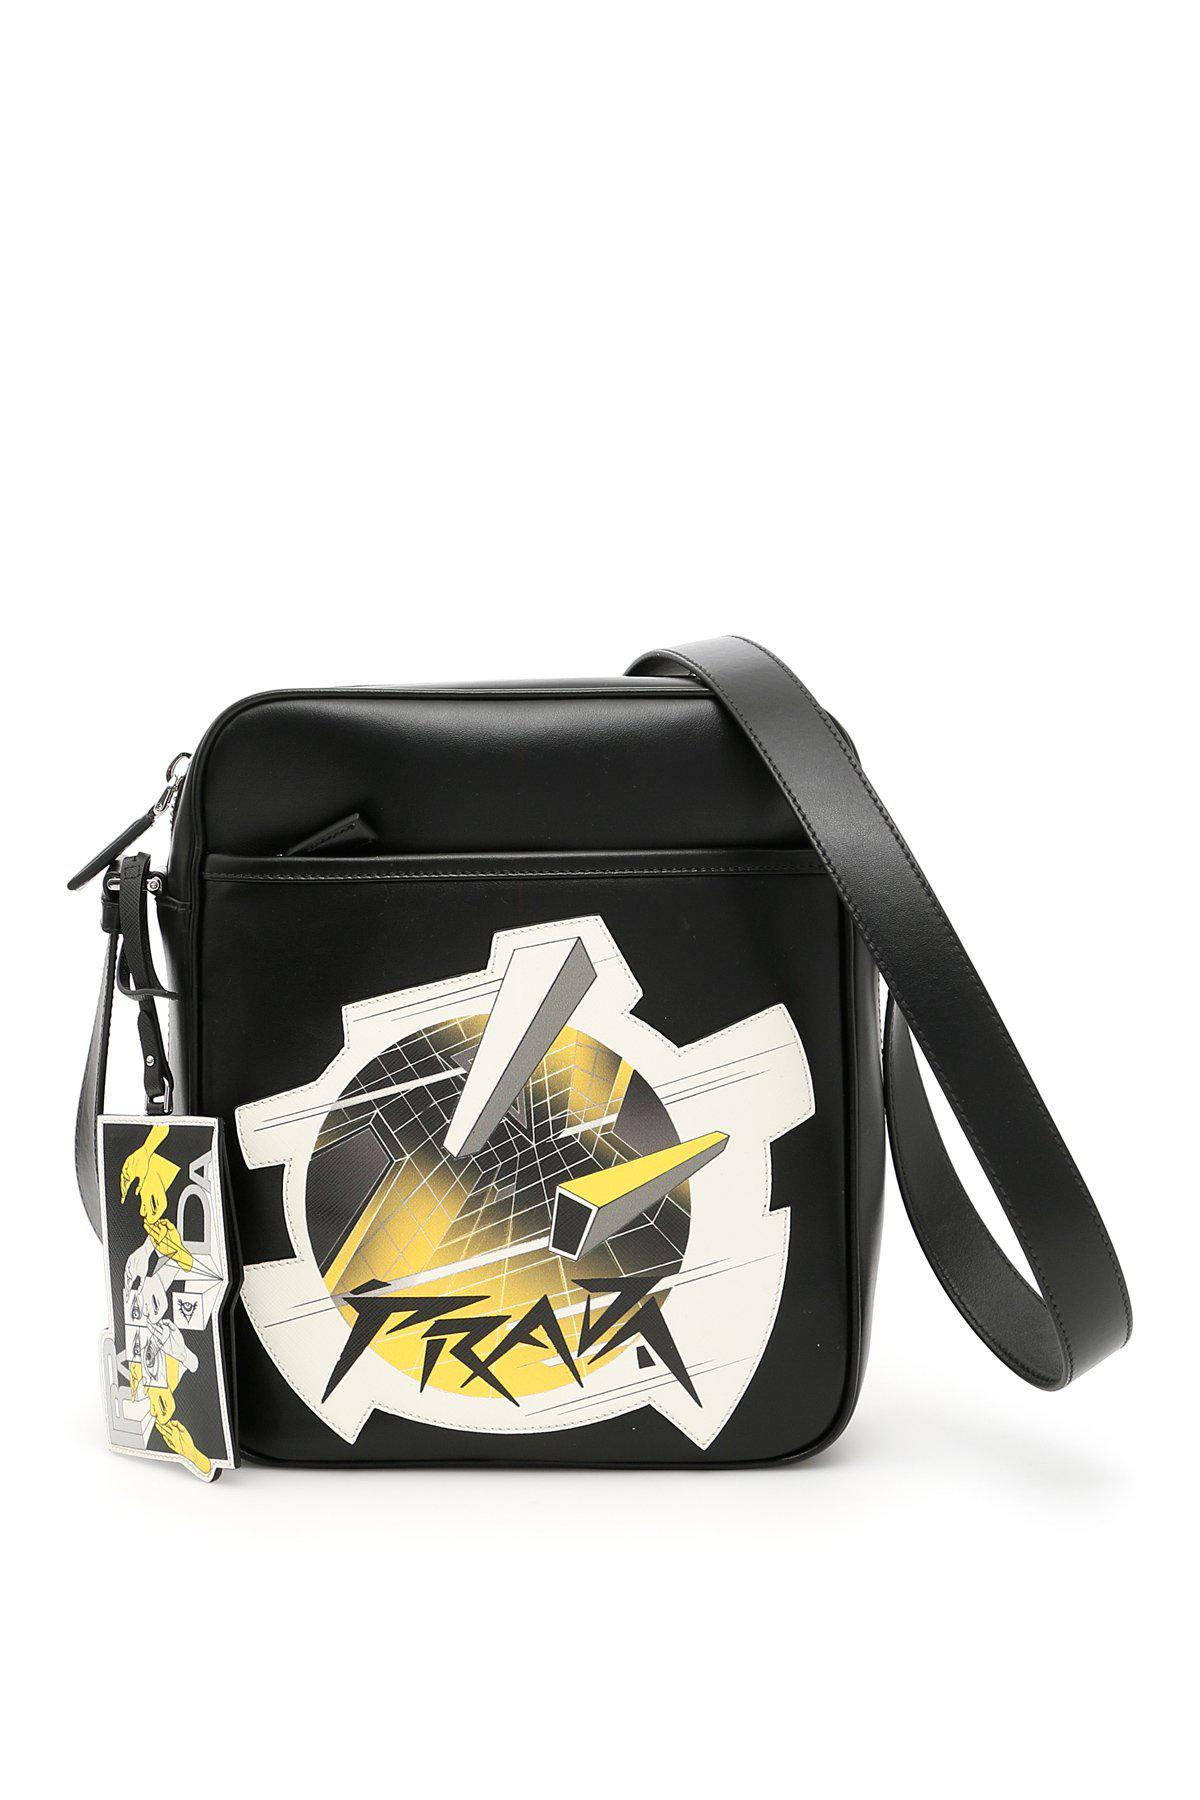 3f77b2a36faaad Prada Comic Print Messenger Bag in Black for Men - Lyst